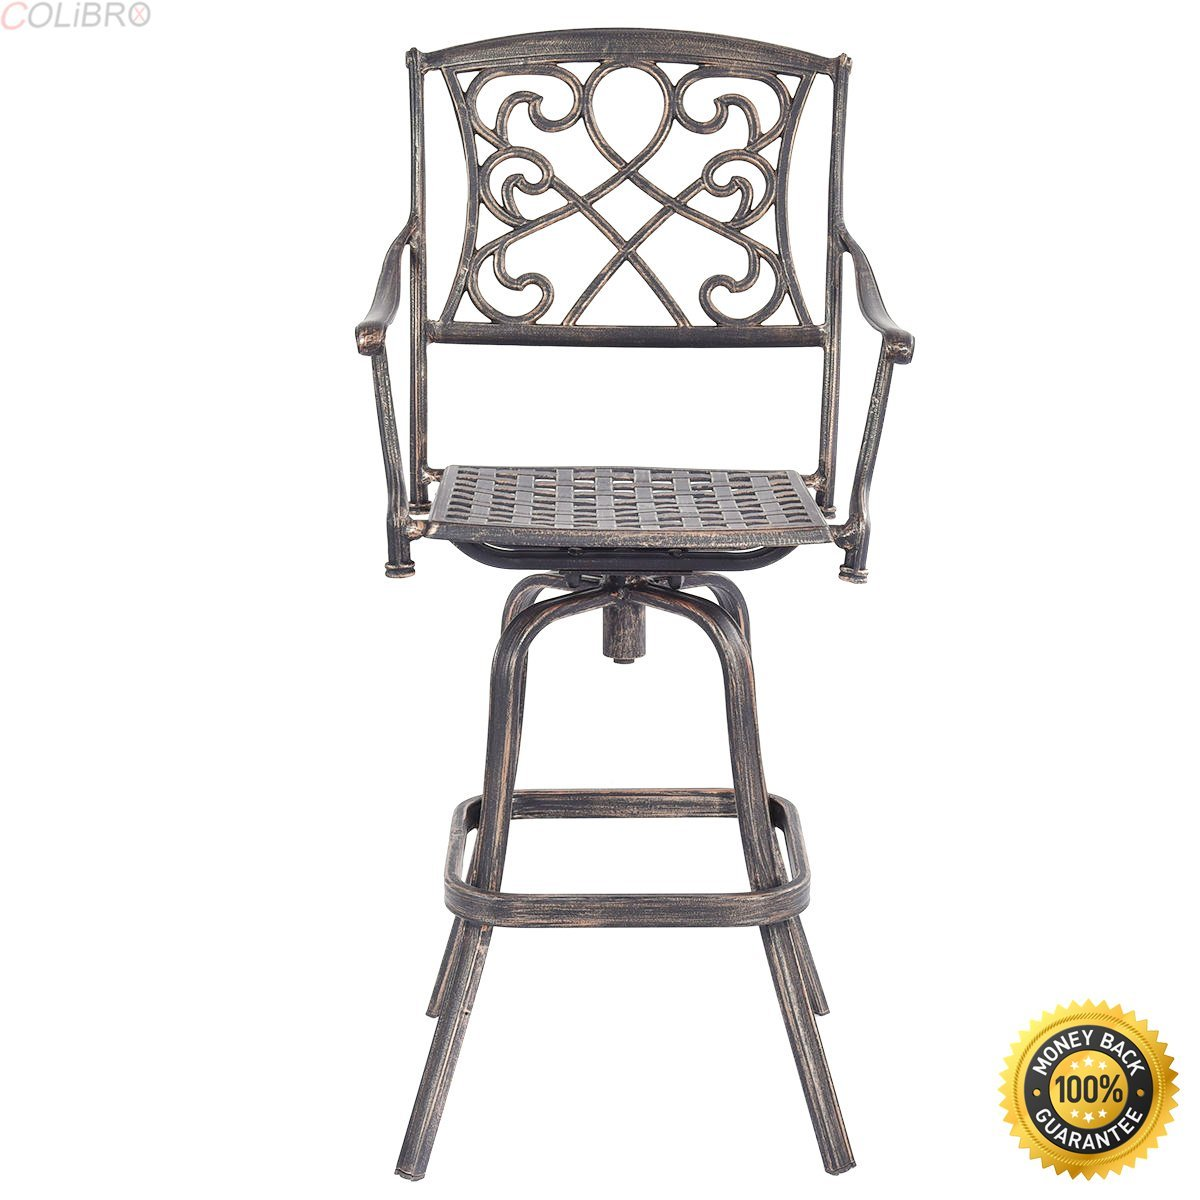 Buy Colibrox Cast Aluminum Swivel Bar Stool Patio Furniture Antique Copper Design Outdoor New Kitchen Island Bar Stools Bar Stools For Sale Industrial Bar Stools Vintage Retro Bar Stools In Cheap Price On Alibaba Com